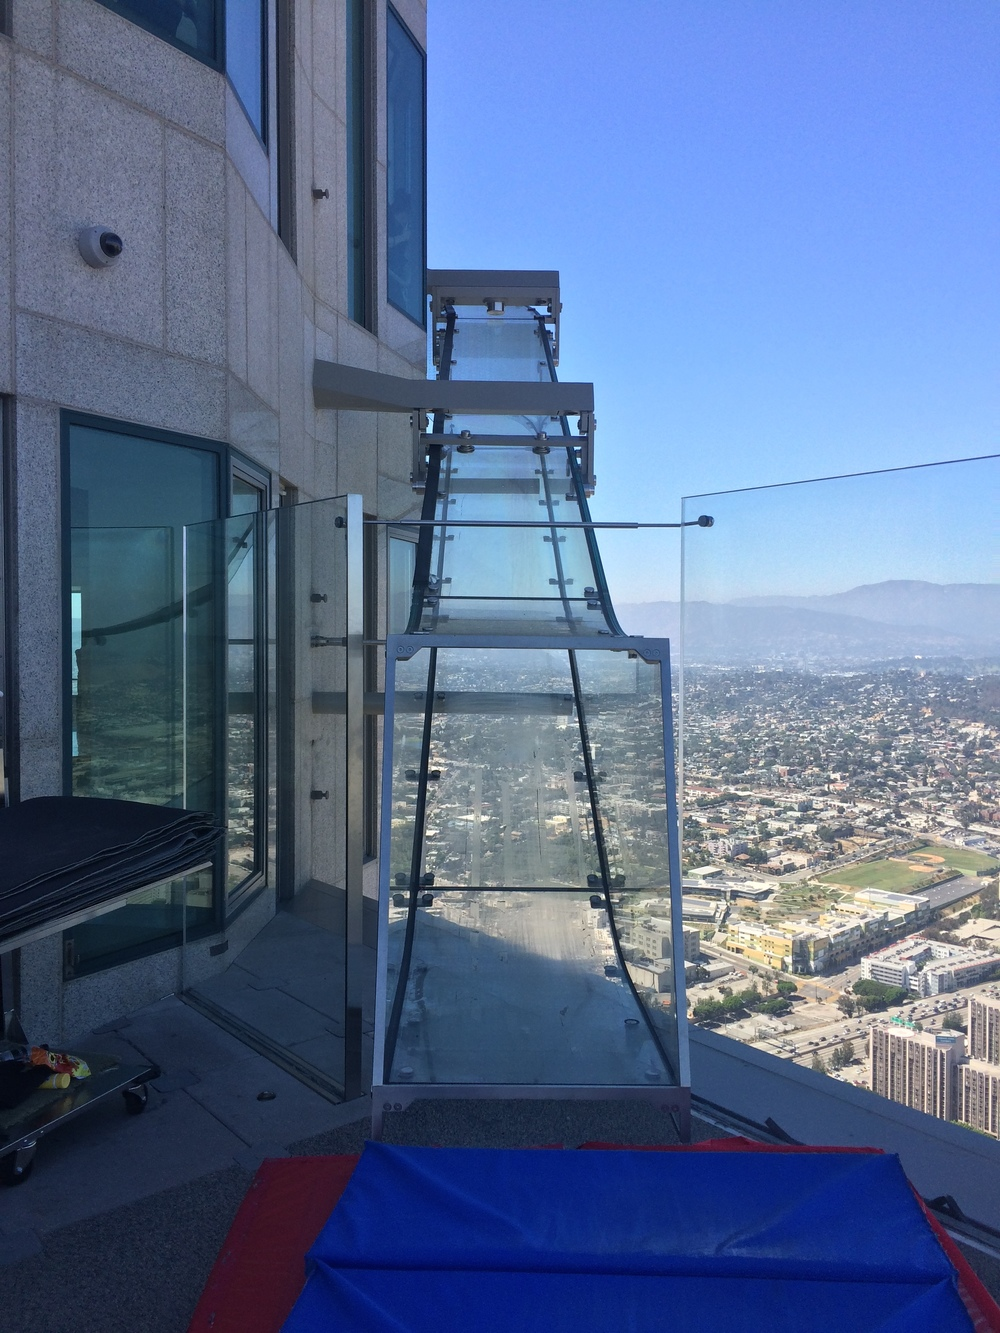 The Skyslide is a one-of-a-kind attraction that connects the buildings 69th and 70th floors.